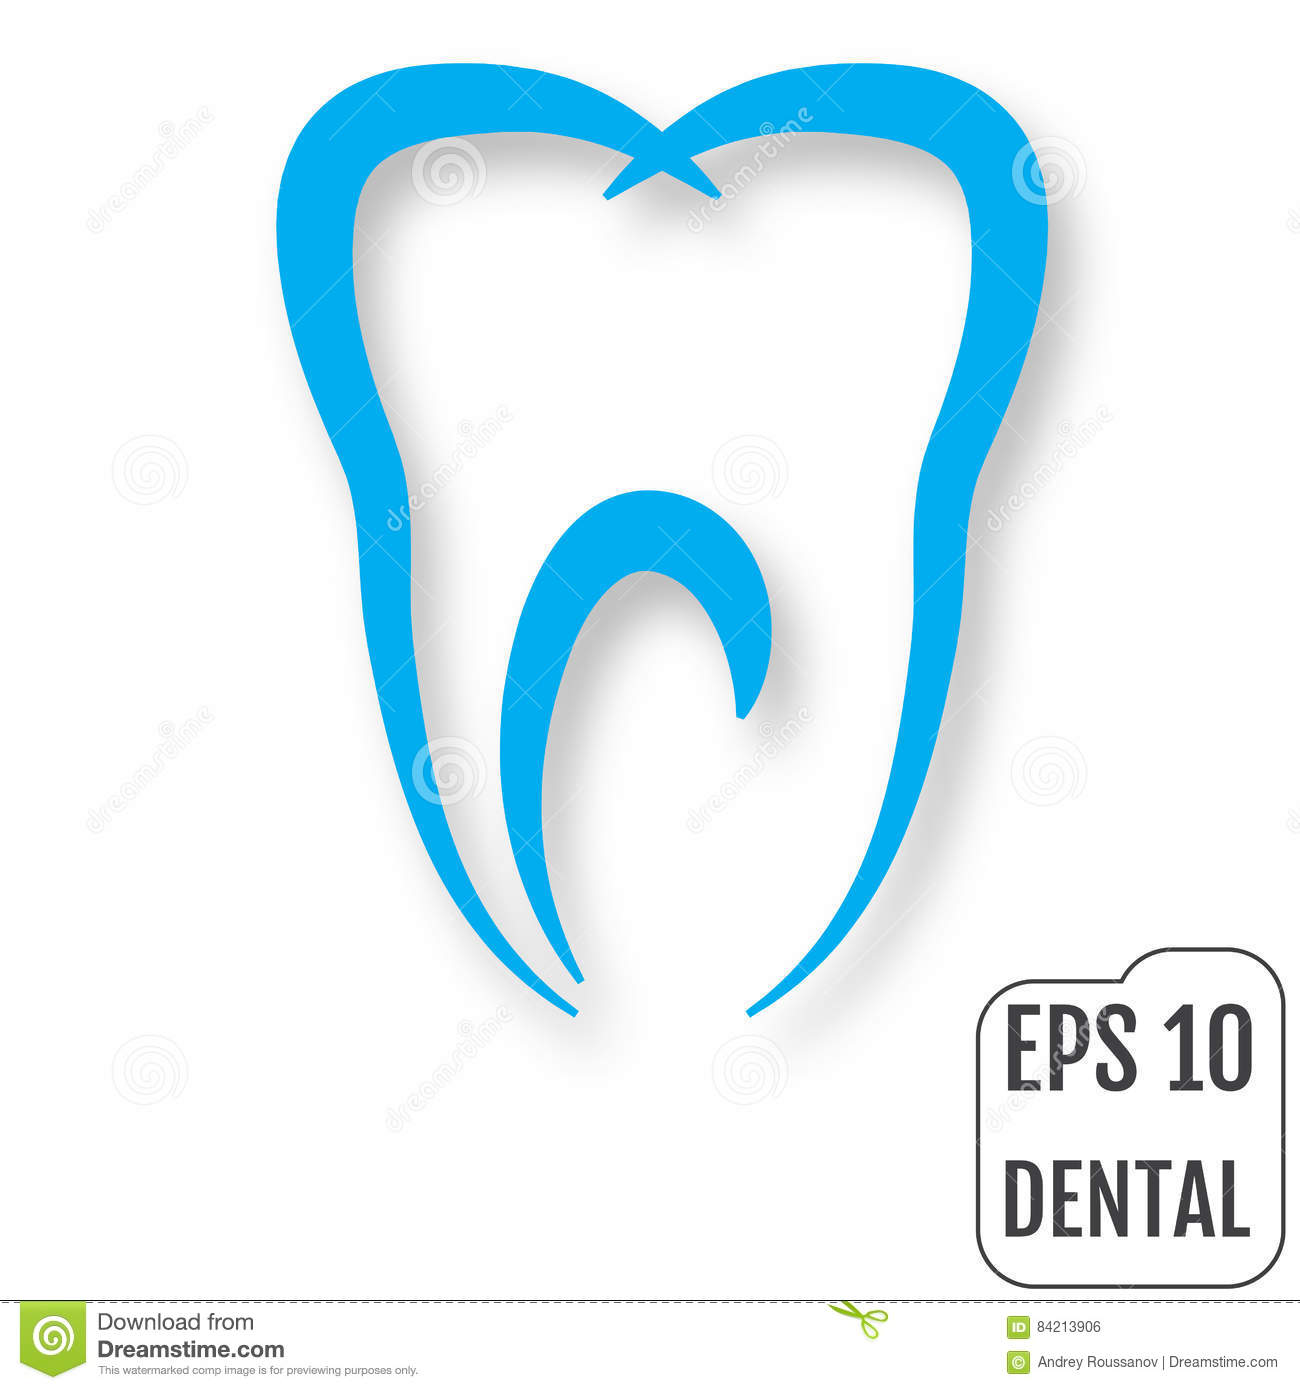 dental-logo-concept-dental-clinic-vector-illustration-84213906.jpg